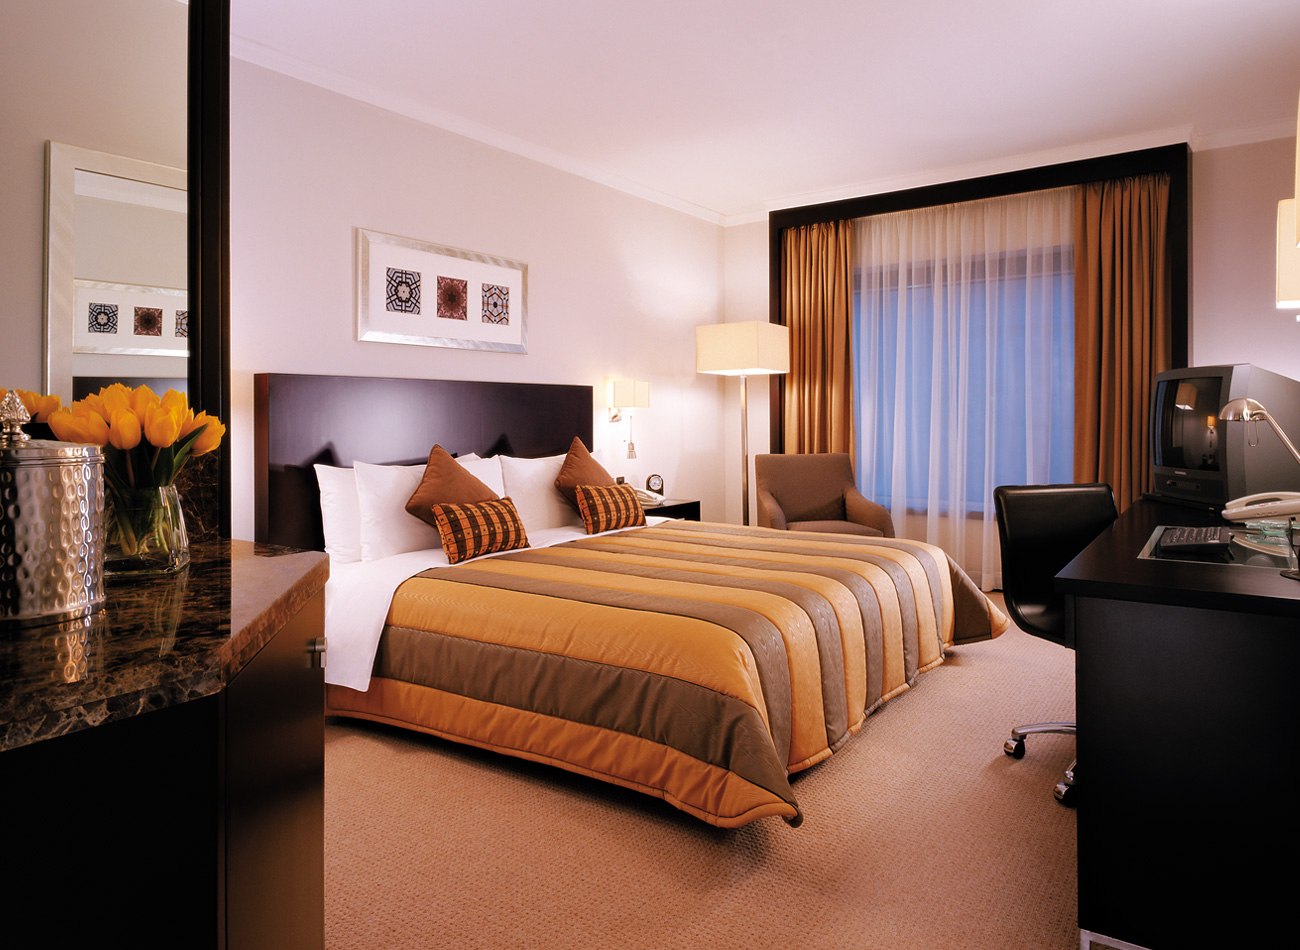 Best hotels in dubai top 10 for Top 10 most luxurious hotels in dubai